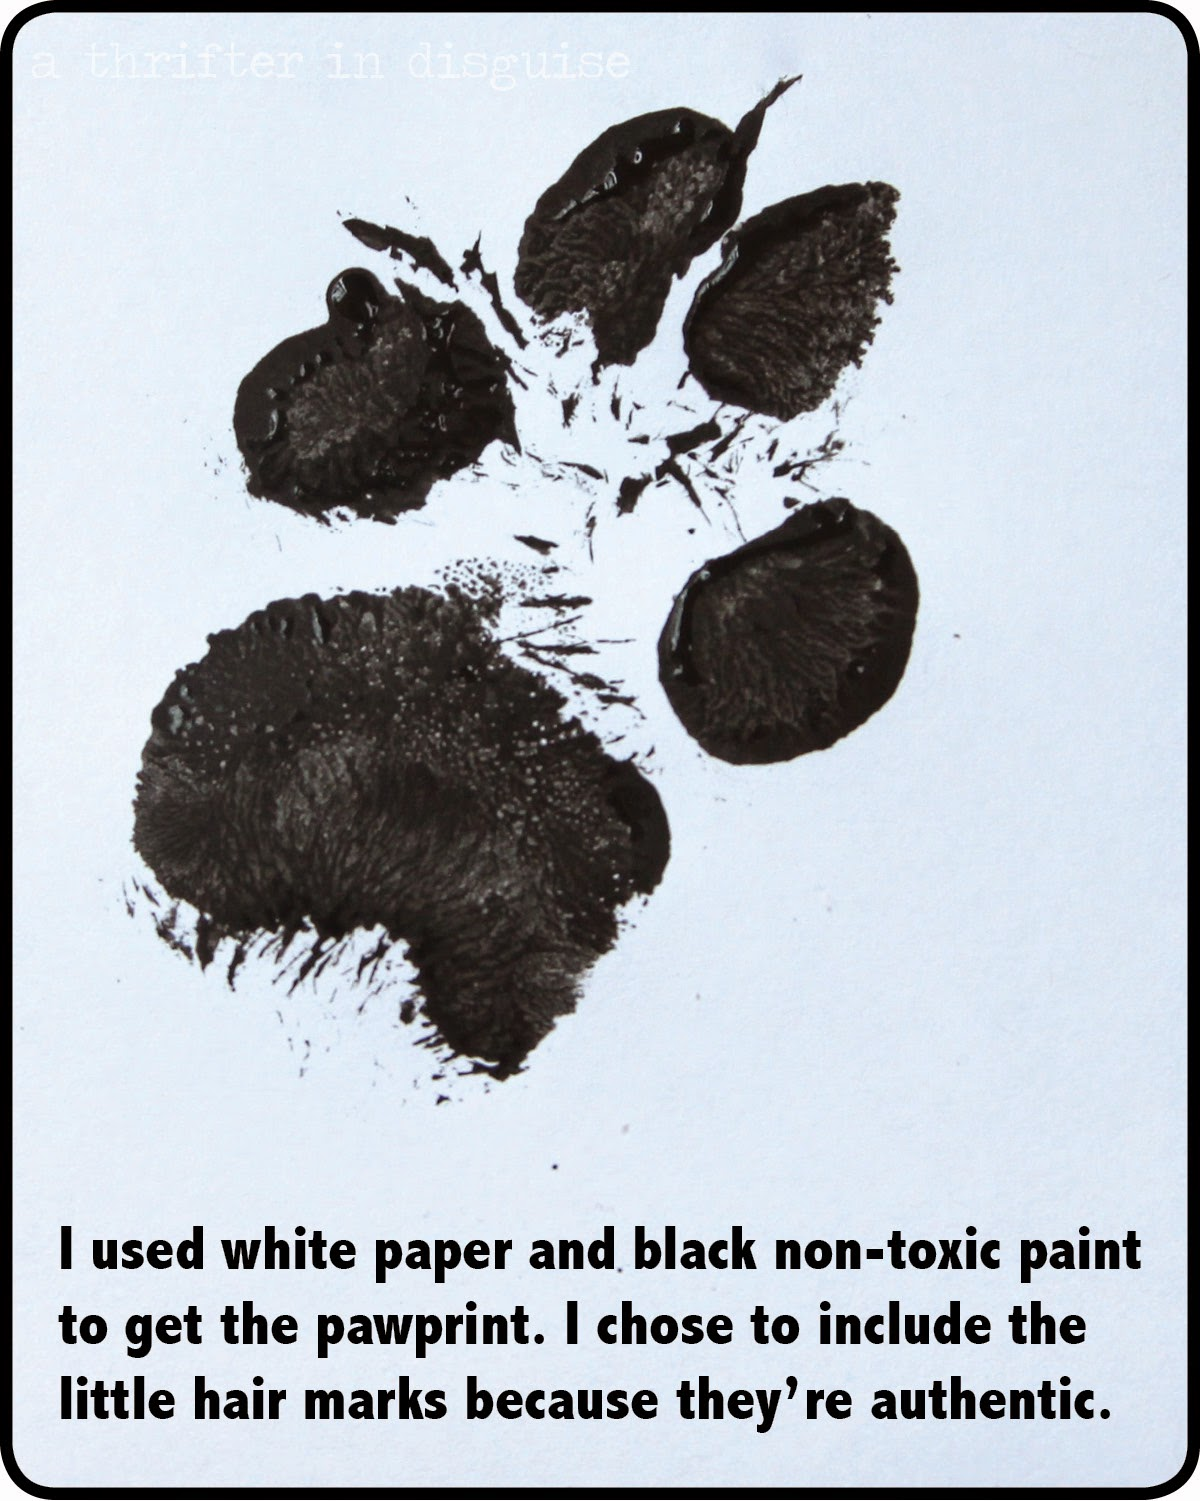 Using paint to get dog's paw print